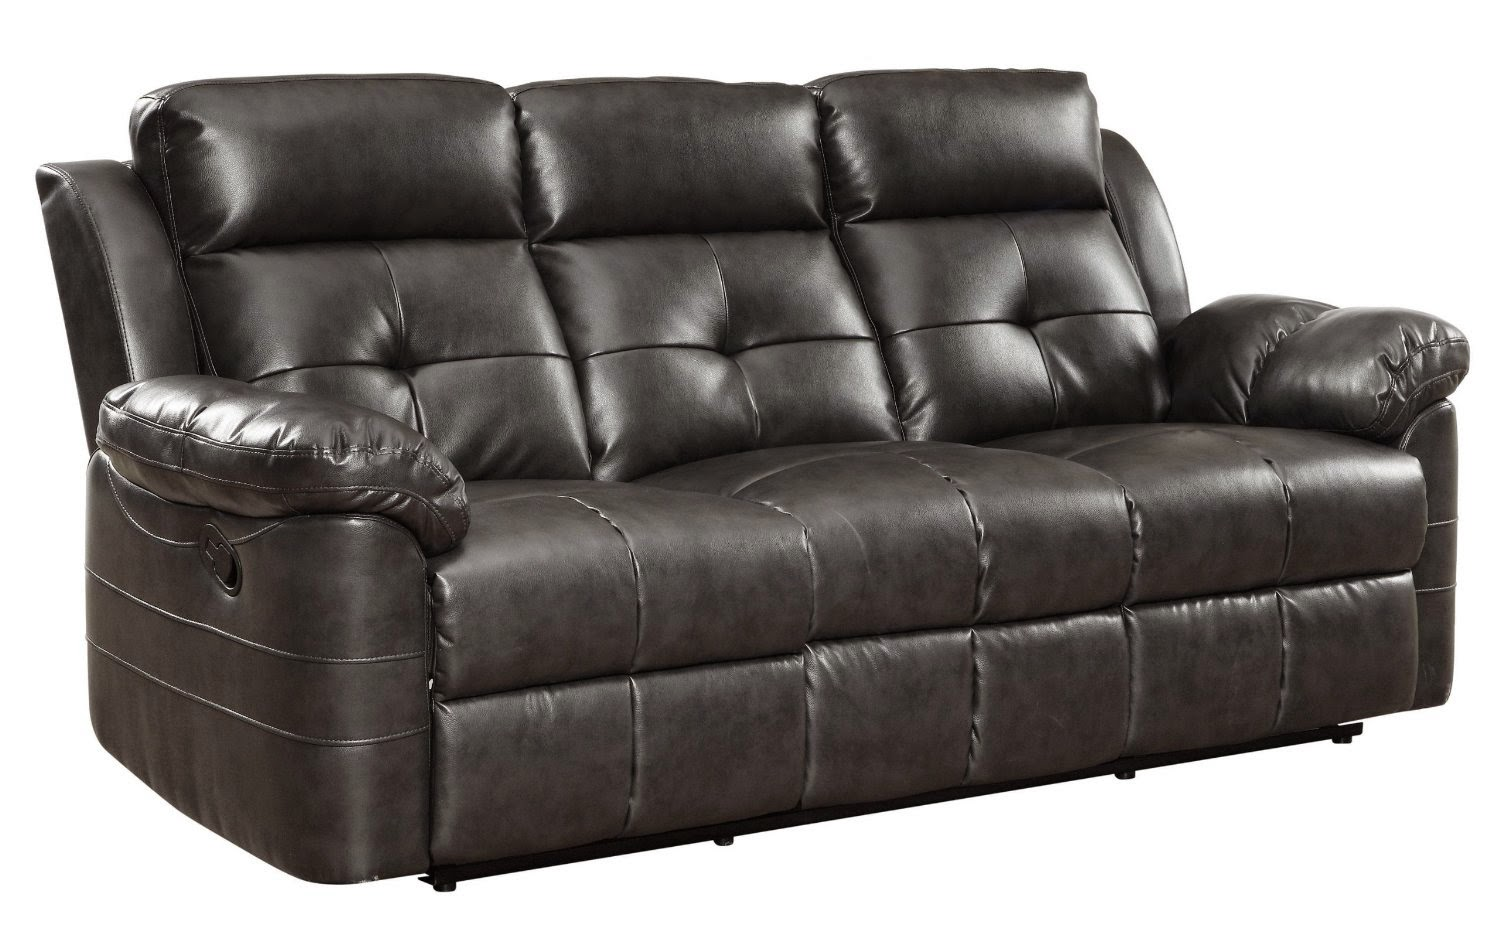 The best reclining sofas ratings reviews curved leather reclining sofa set Leather reclining sofa loveseat